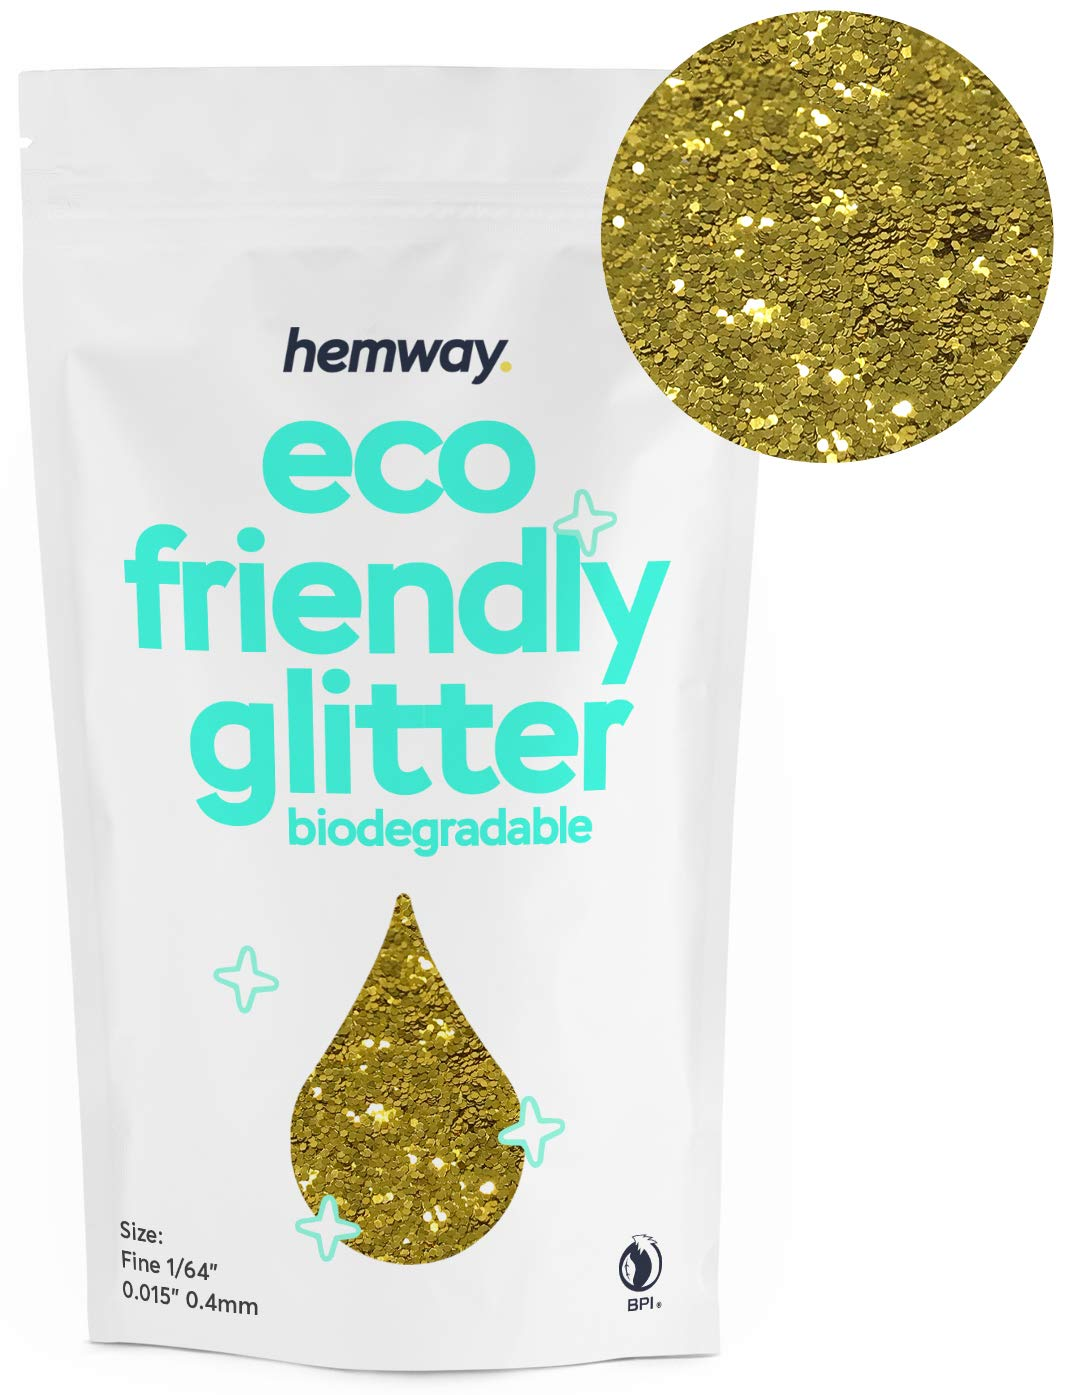 """Hemway Eco Friendly Biodegradable Glitter 100g / 3.5oz Bio Cosmetic Safe Sparkle Vegan for Face, Eyeshadow, Body, Hair, Nail and Festival Makeup, Craft - 1/64"""" 0.015"""" 0.4mm - Gold"""